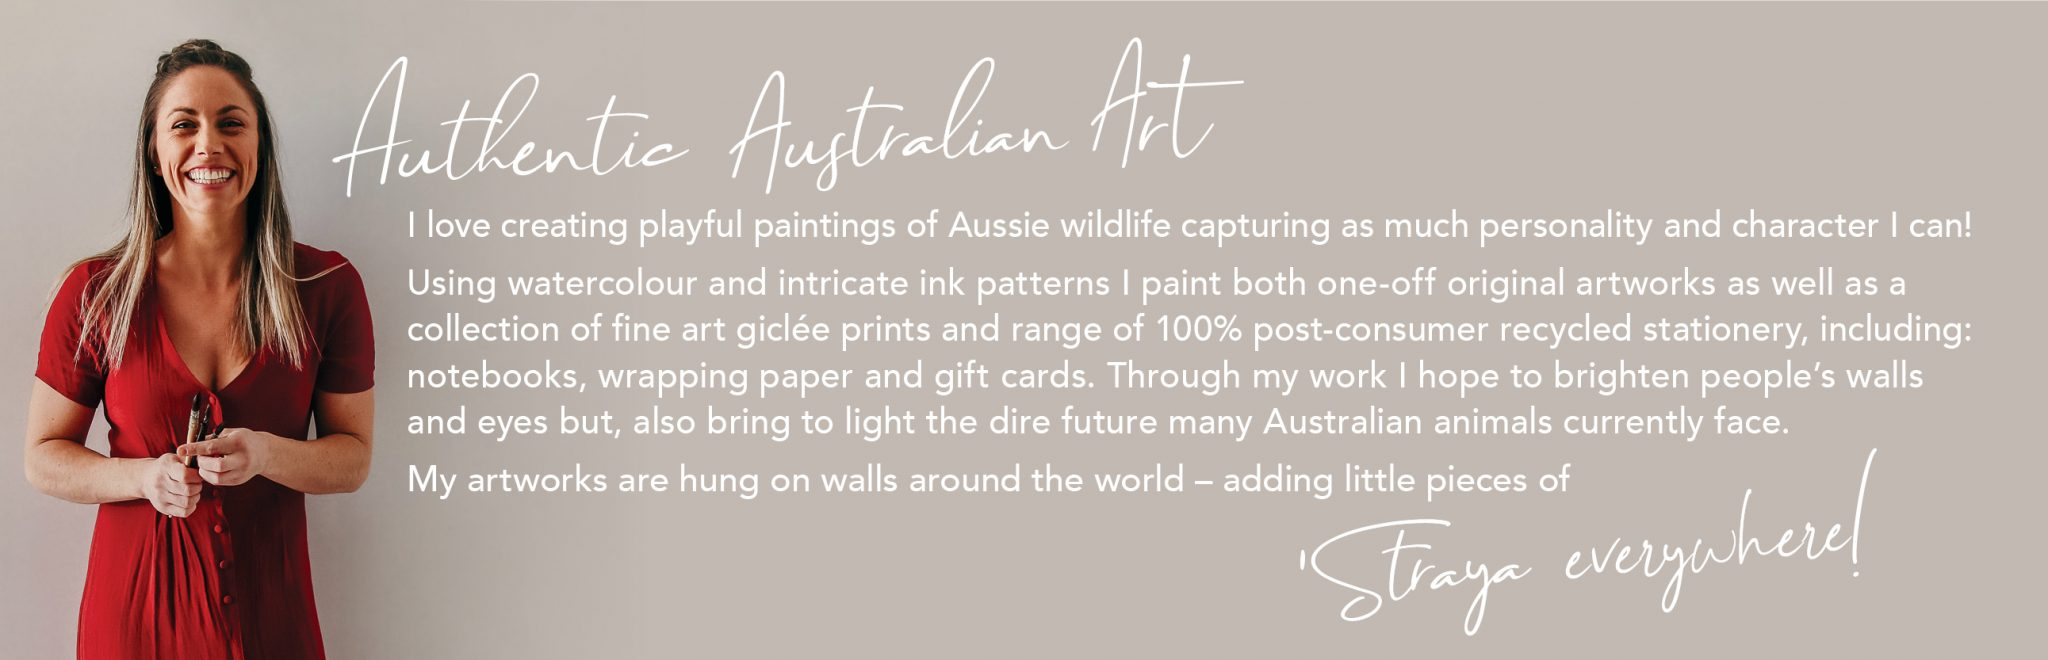 Shannon Dwyer is a Sydney-based artist with a playful style that captures the personality and joy of her art subjects: Australian animals. Using watercolour as her base, Shannon's unique use of traditional nib and ink creates intricate patterns of beautiful depth, texture and character. Shannon paints both one-off original artworks, a curated collection of fine-art giclée prints and 100% recycled stationery range. Her artworks are hung on walls around the world – adding little pieces of 'Straya everywhere!